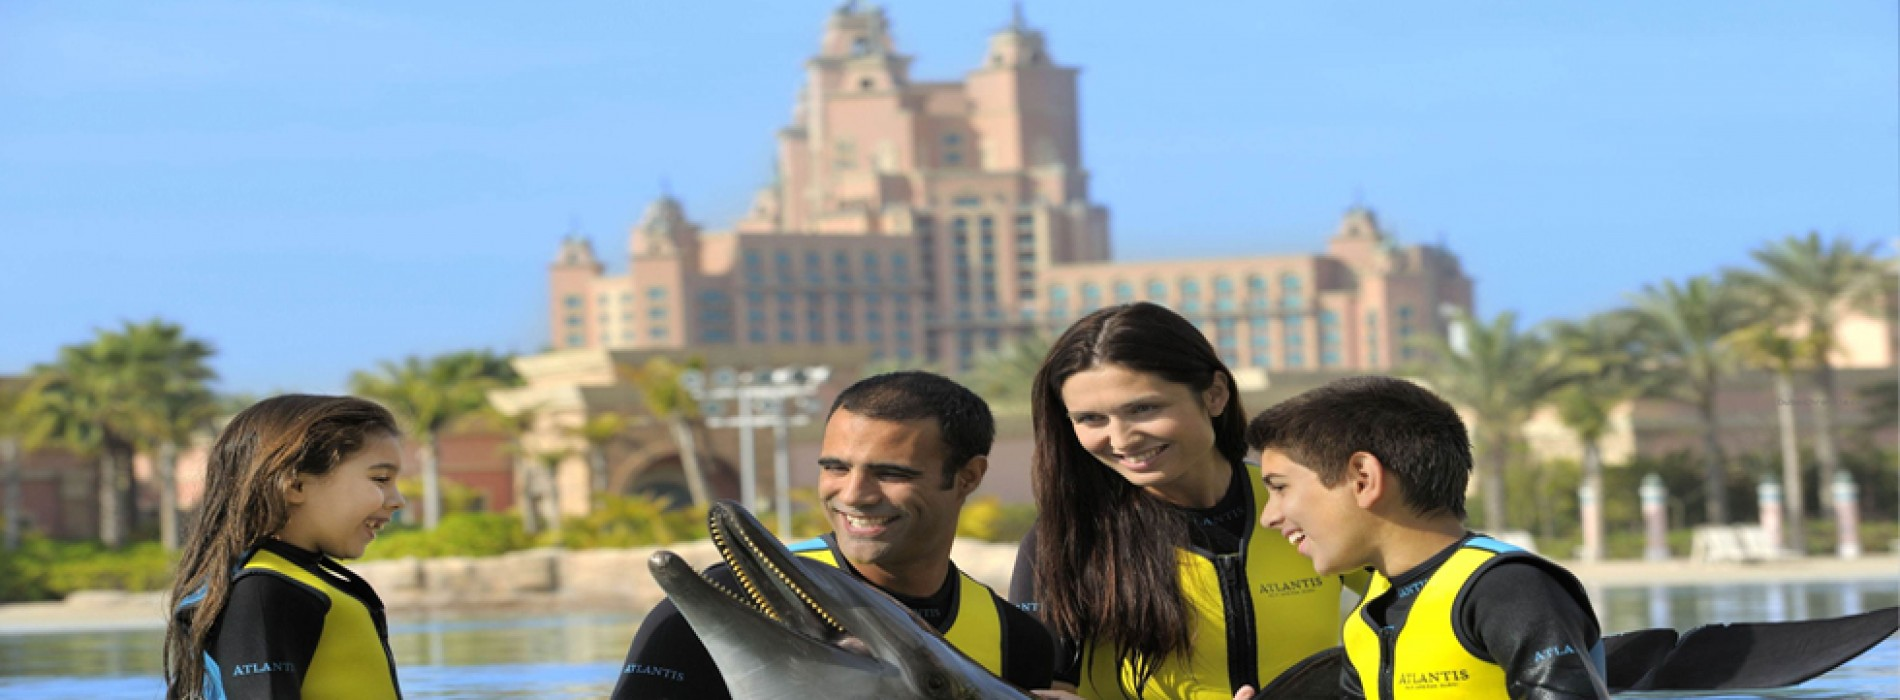 Atlantis, The Palm introduces incredible discounts this Summer